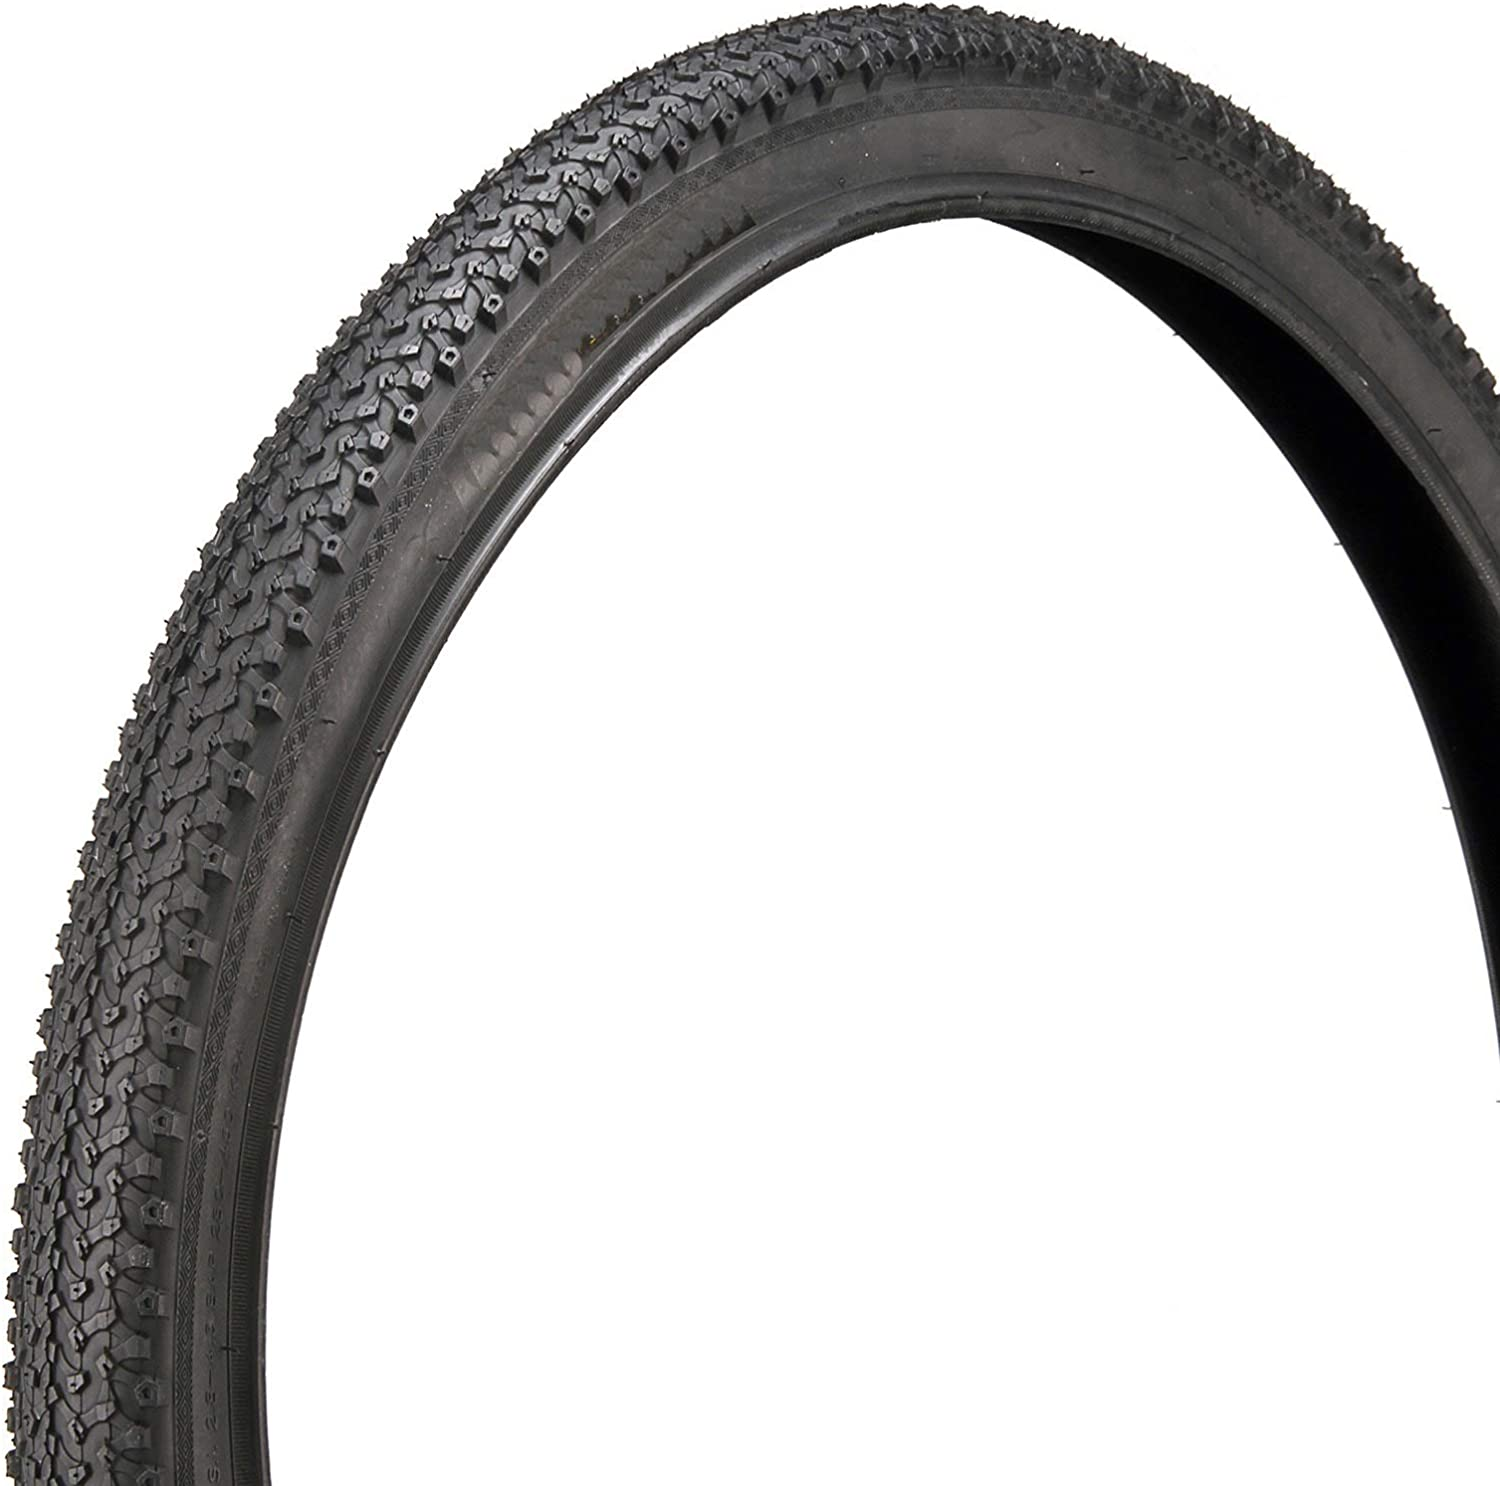 jianzhong Bicycle Tire 261.95 Parts Superlatite Sale special price